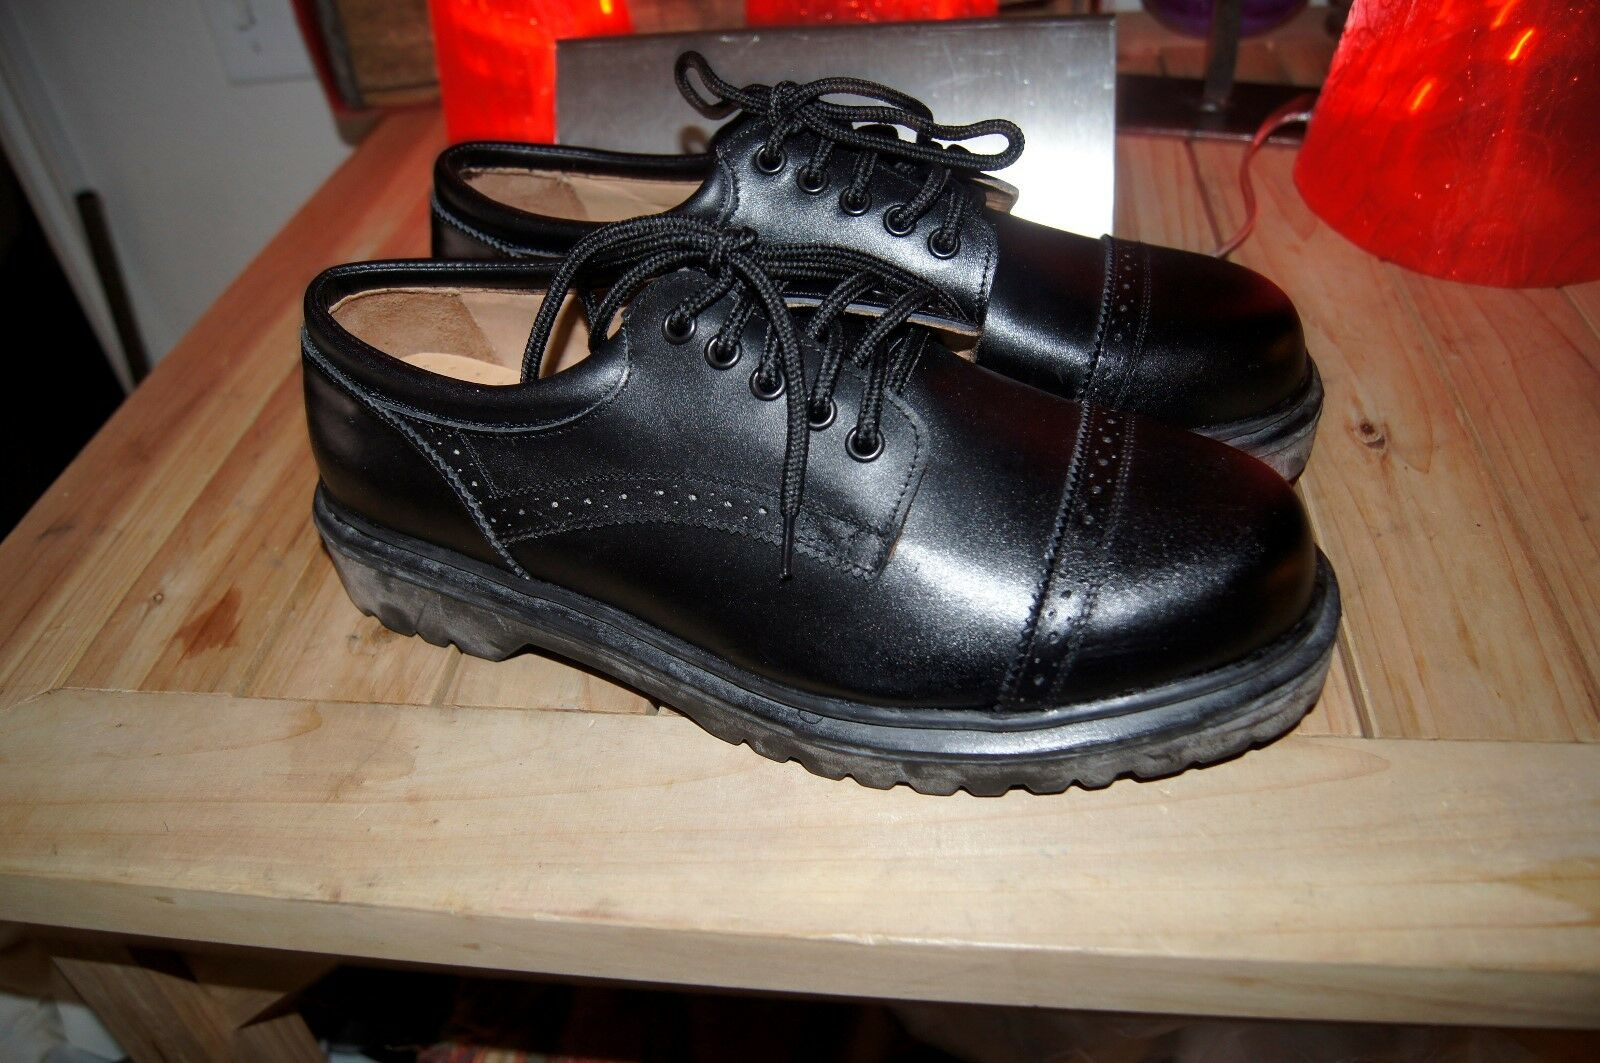 LIAHONA Scarpe 11 LEATHER Scarpe SIZE 11 MISSIONARY Scarpe 11 DRESS Scarpe 11